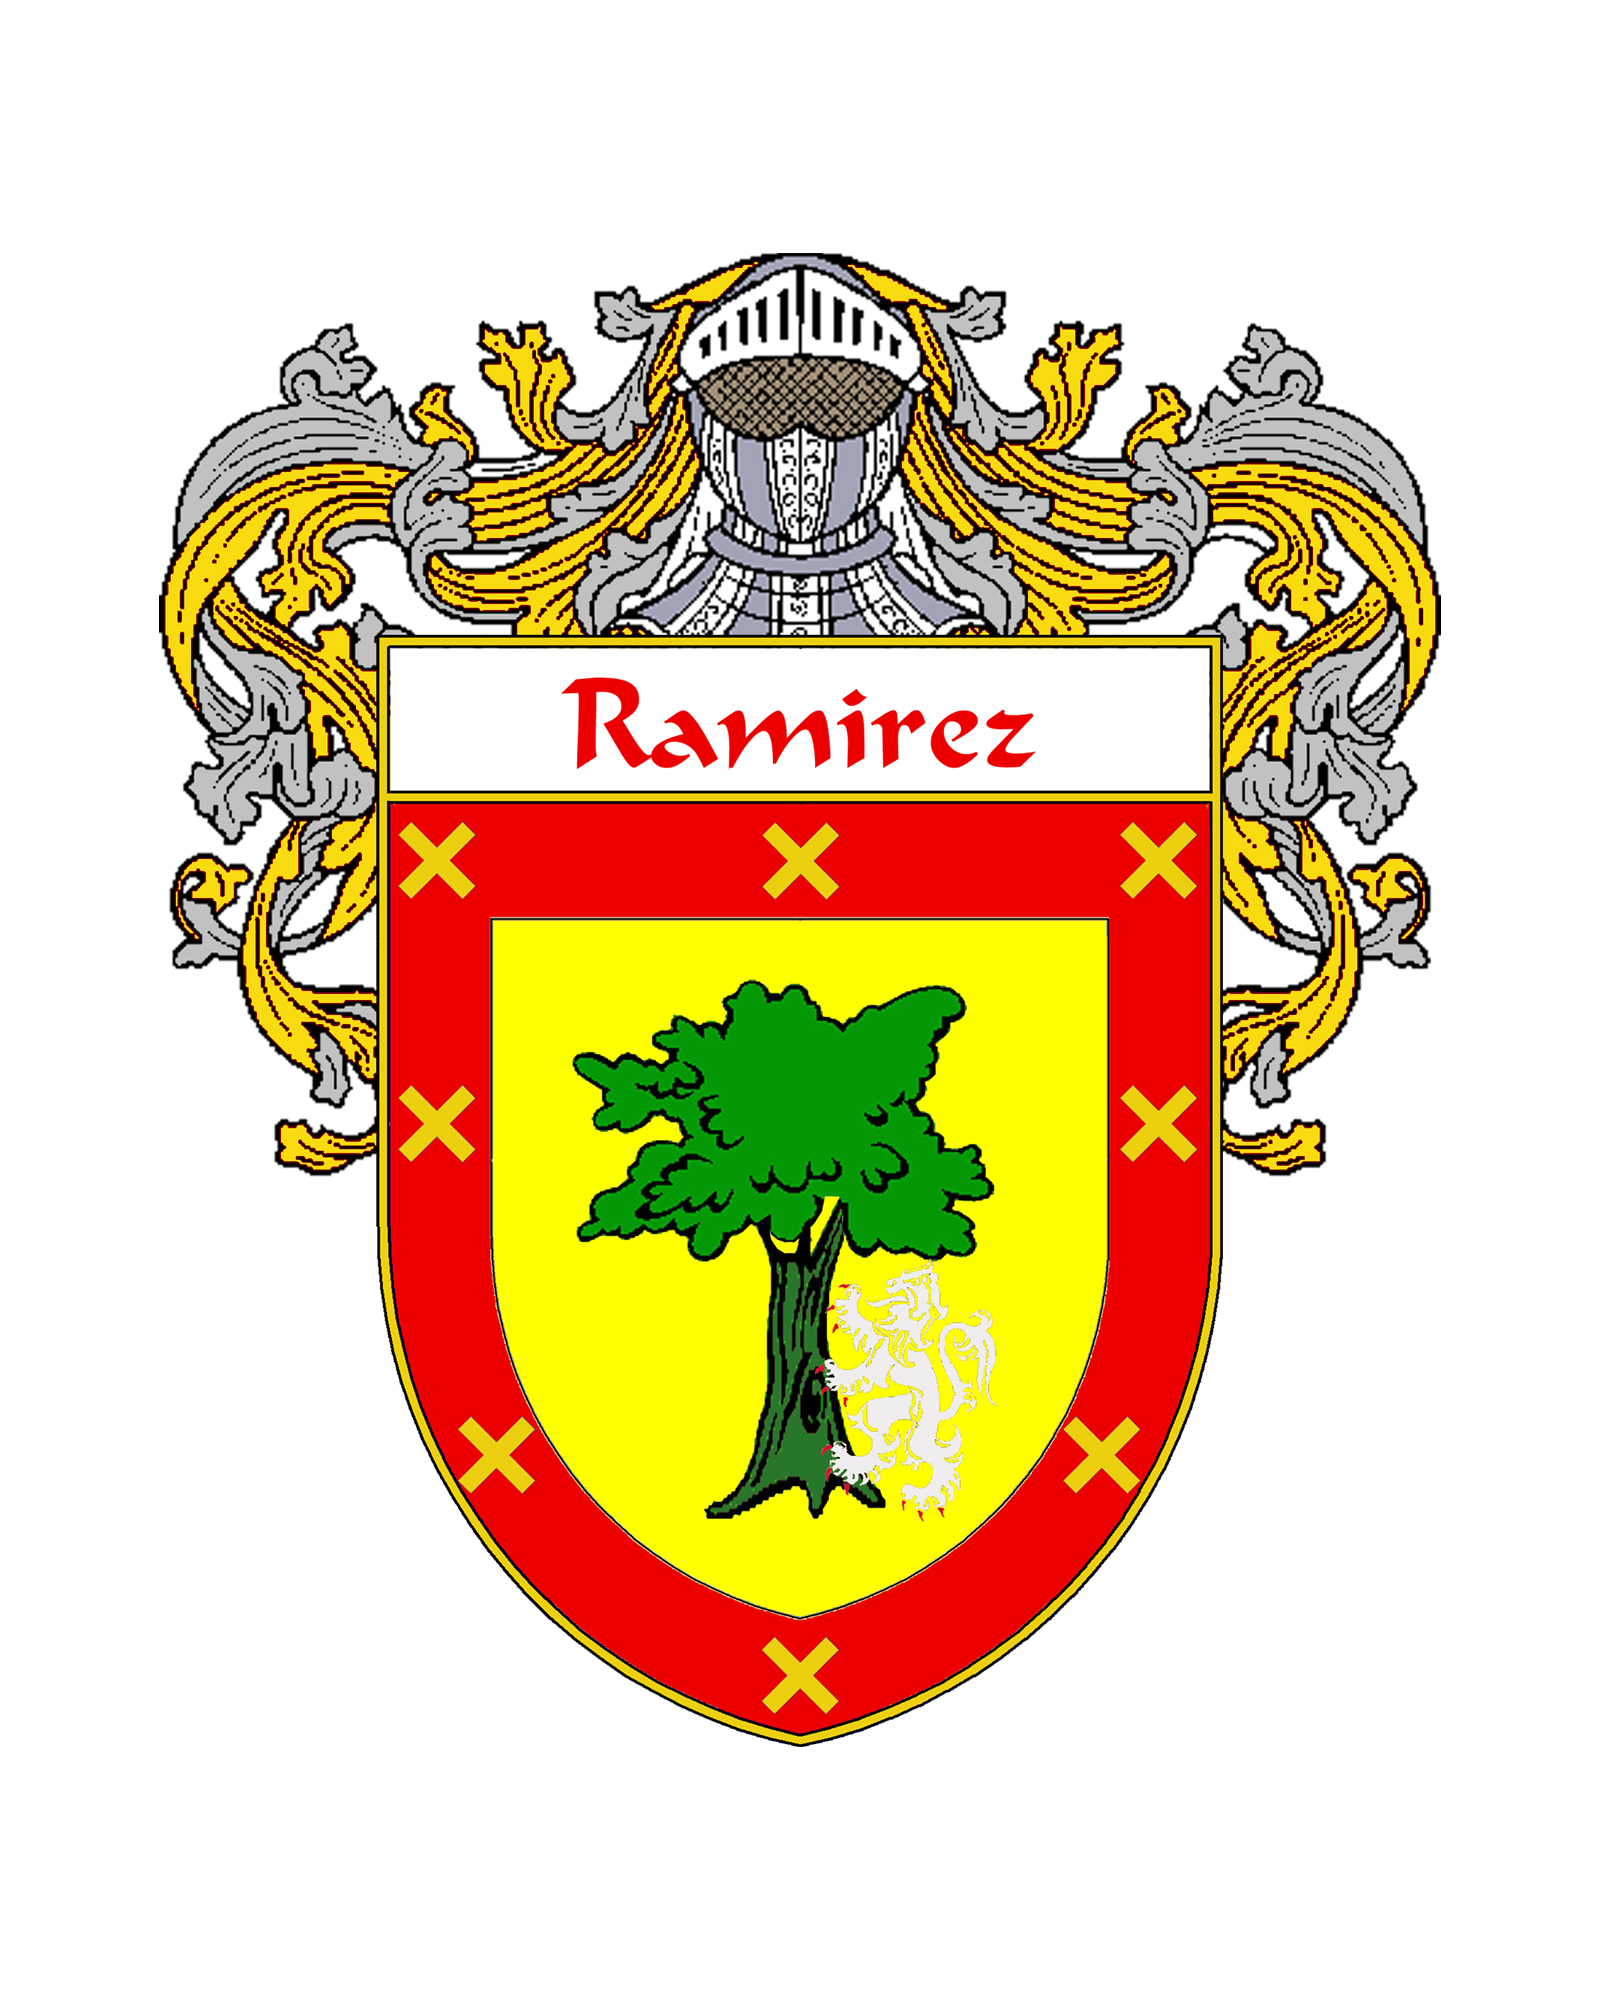 Ramirez Family Crest Tattoo